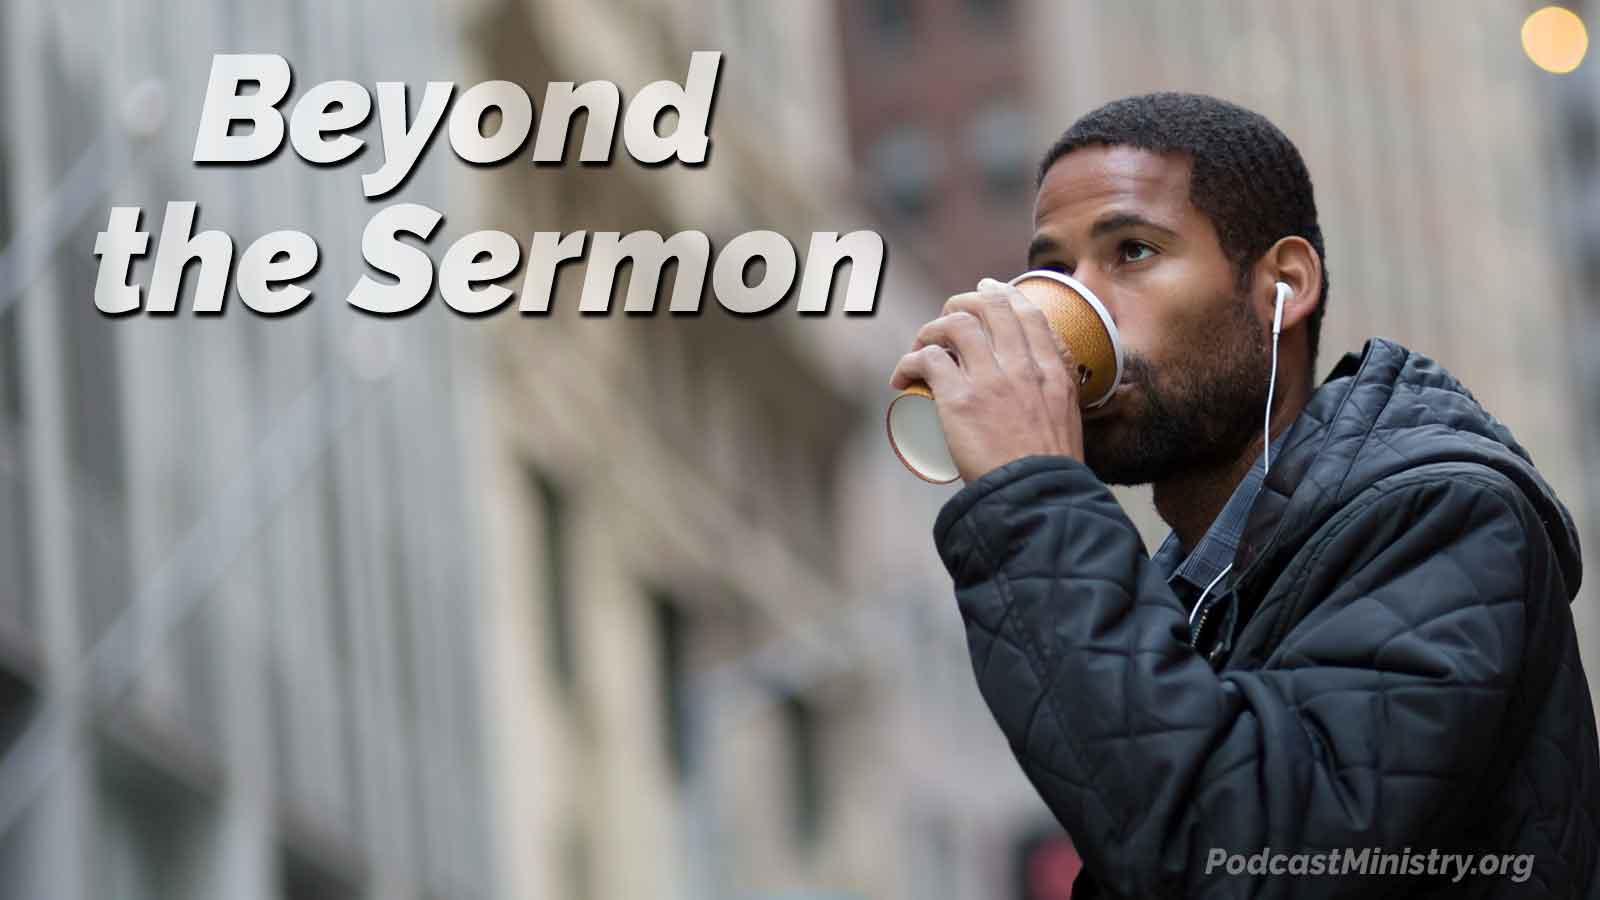 Beyond the Sermon - Podcast Ministry - Man walking drinking coffee and listening to church podcast